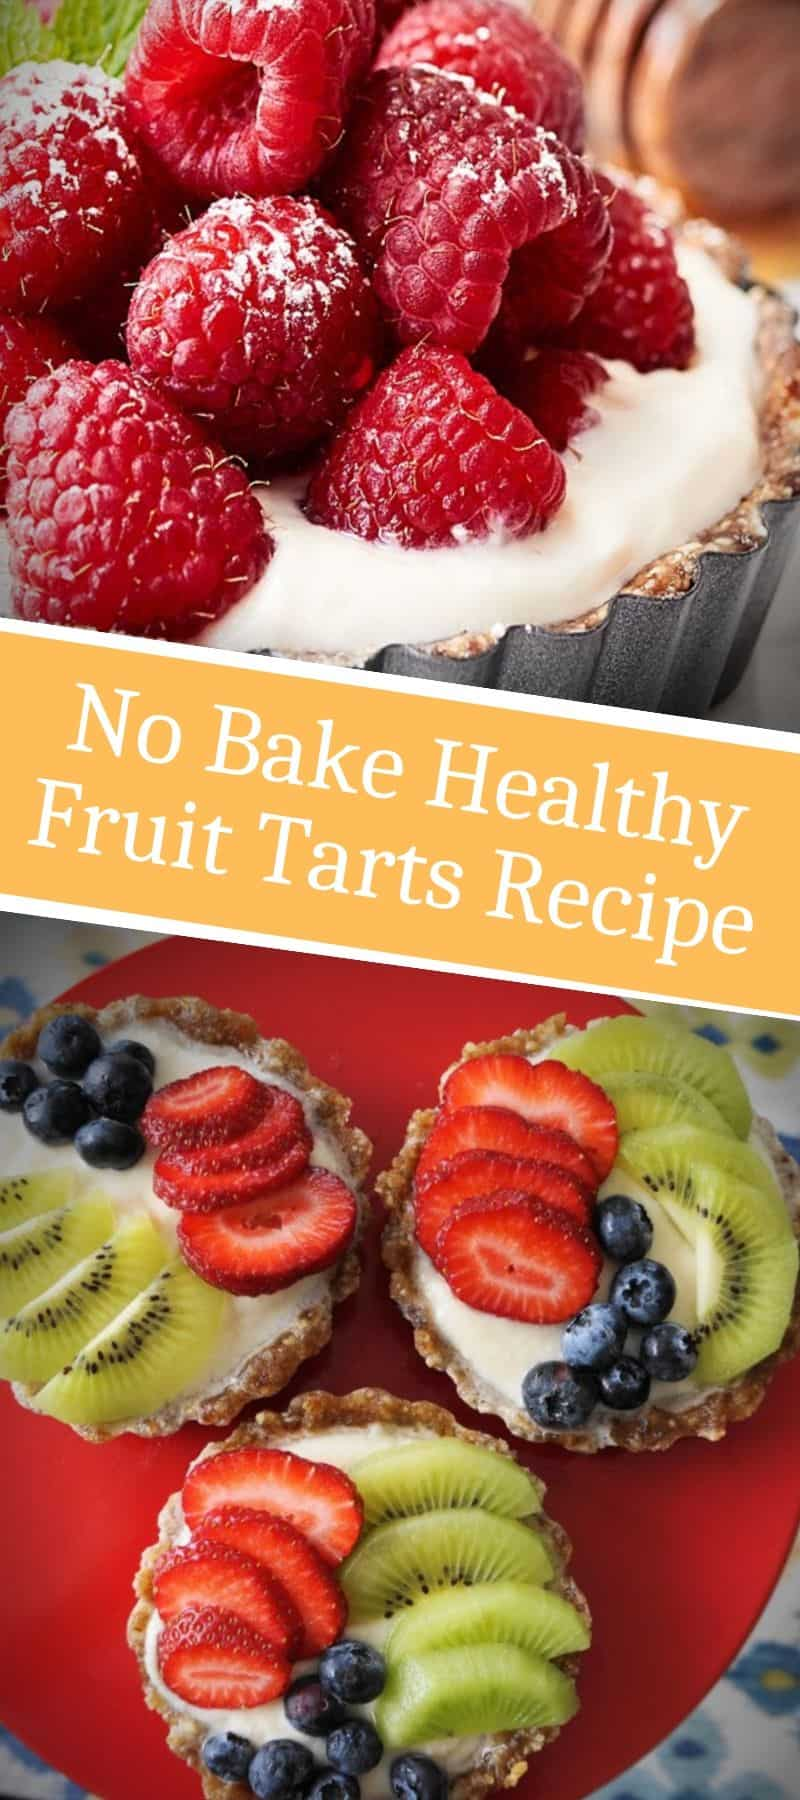 No Bake Healthy Fruit Tarts Recipe 3